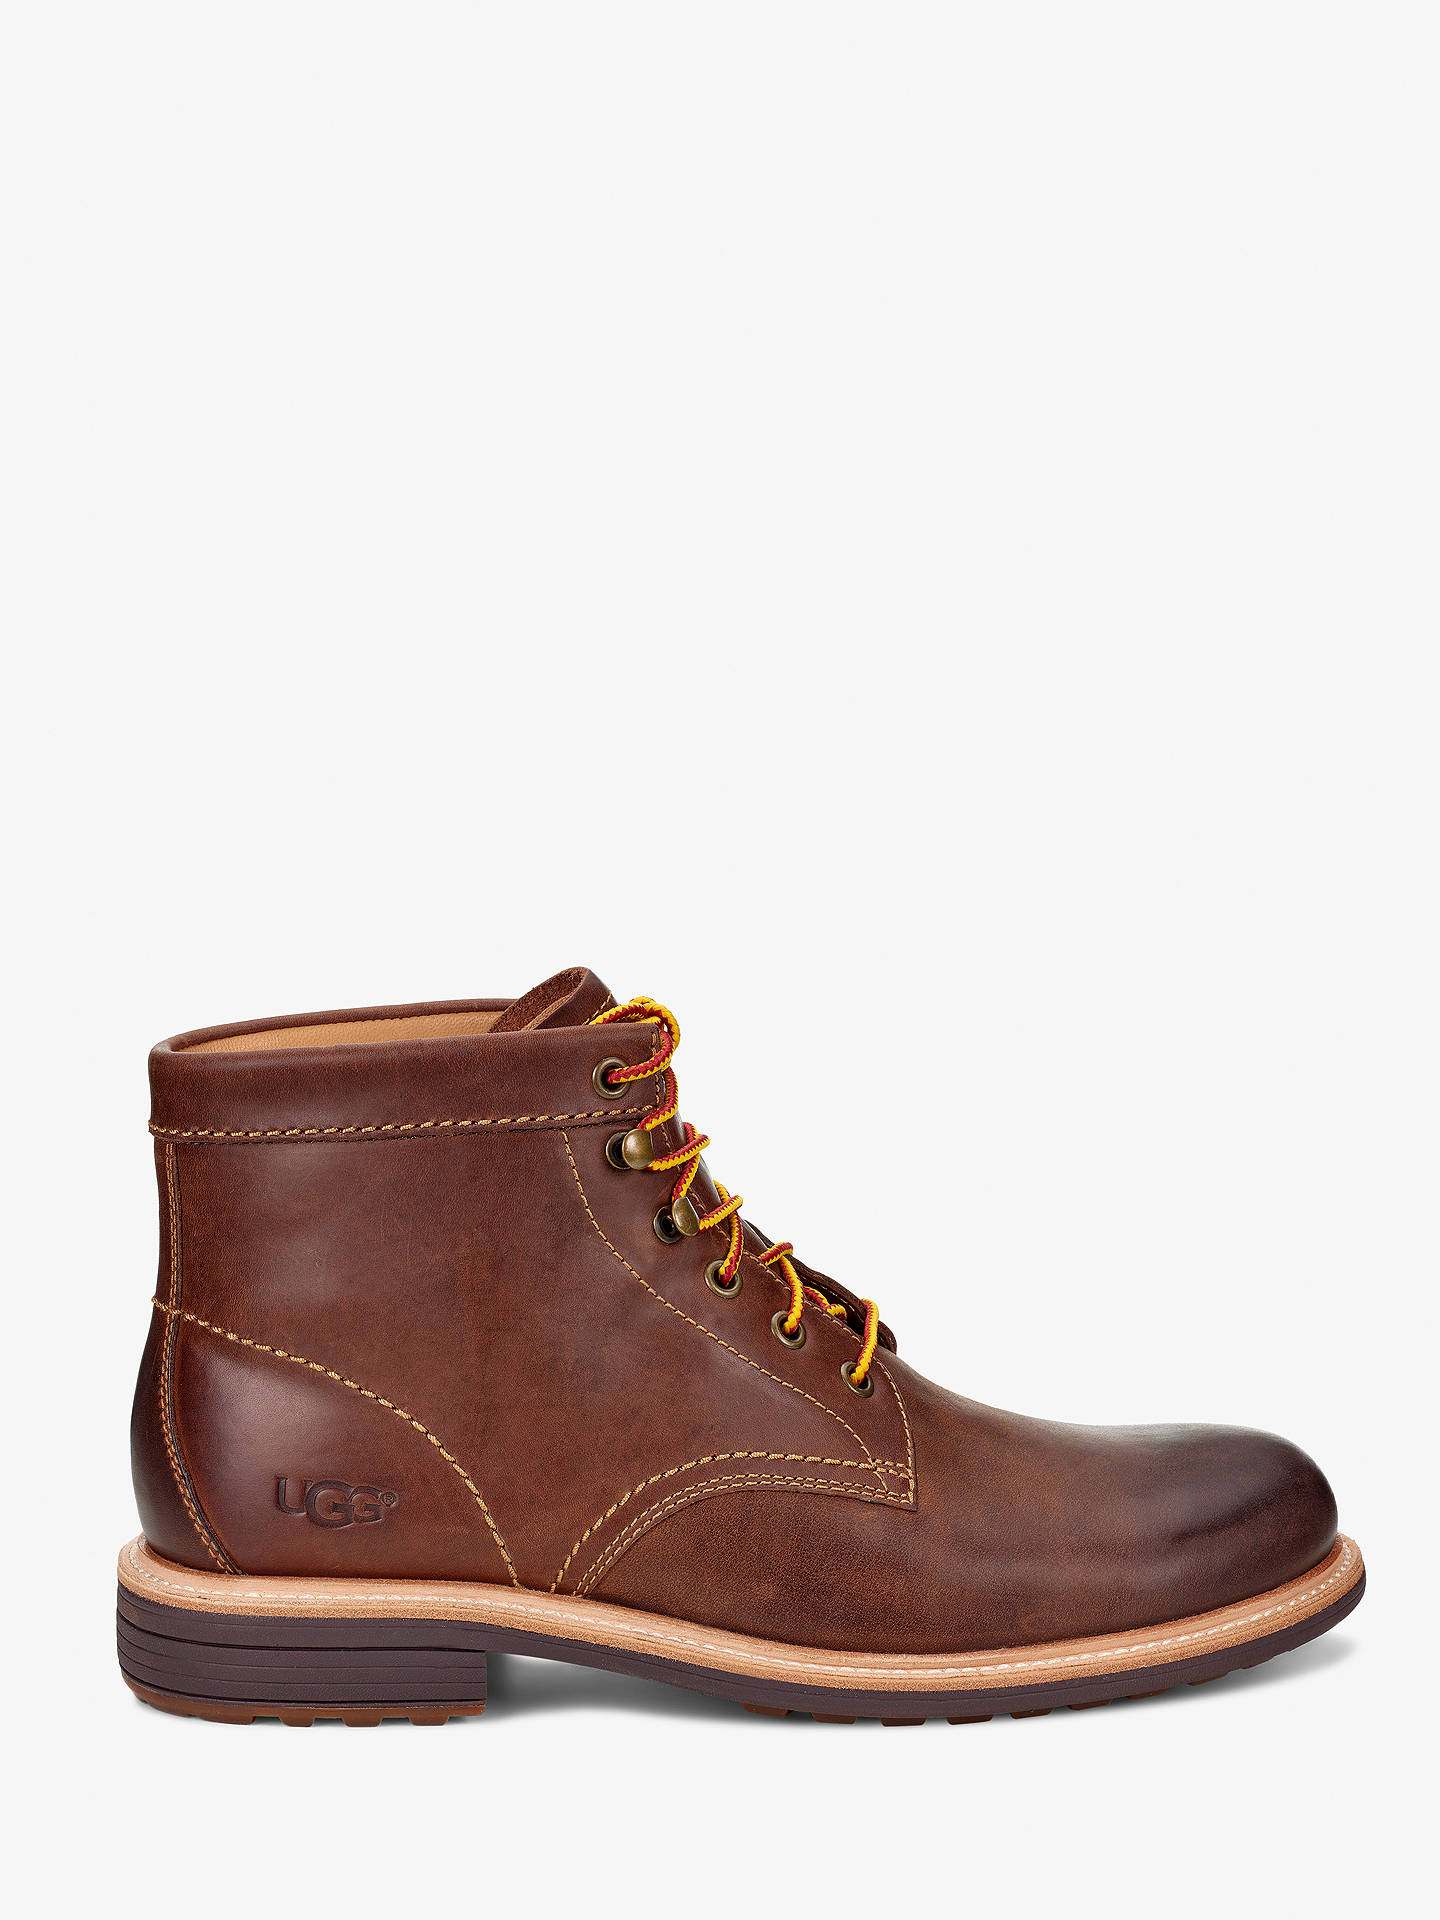 bb2a8898957 UGG Vestmar Boots, Grizzly at John Lewis & Partners